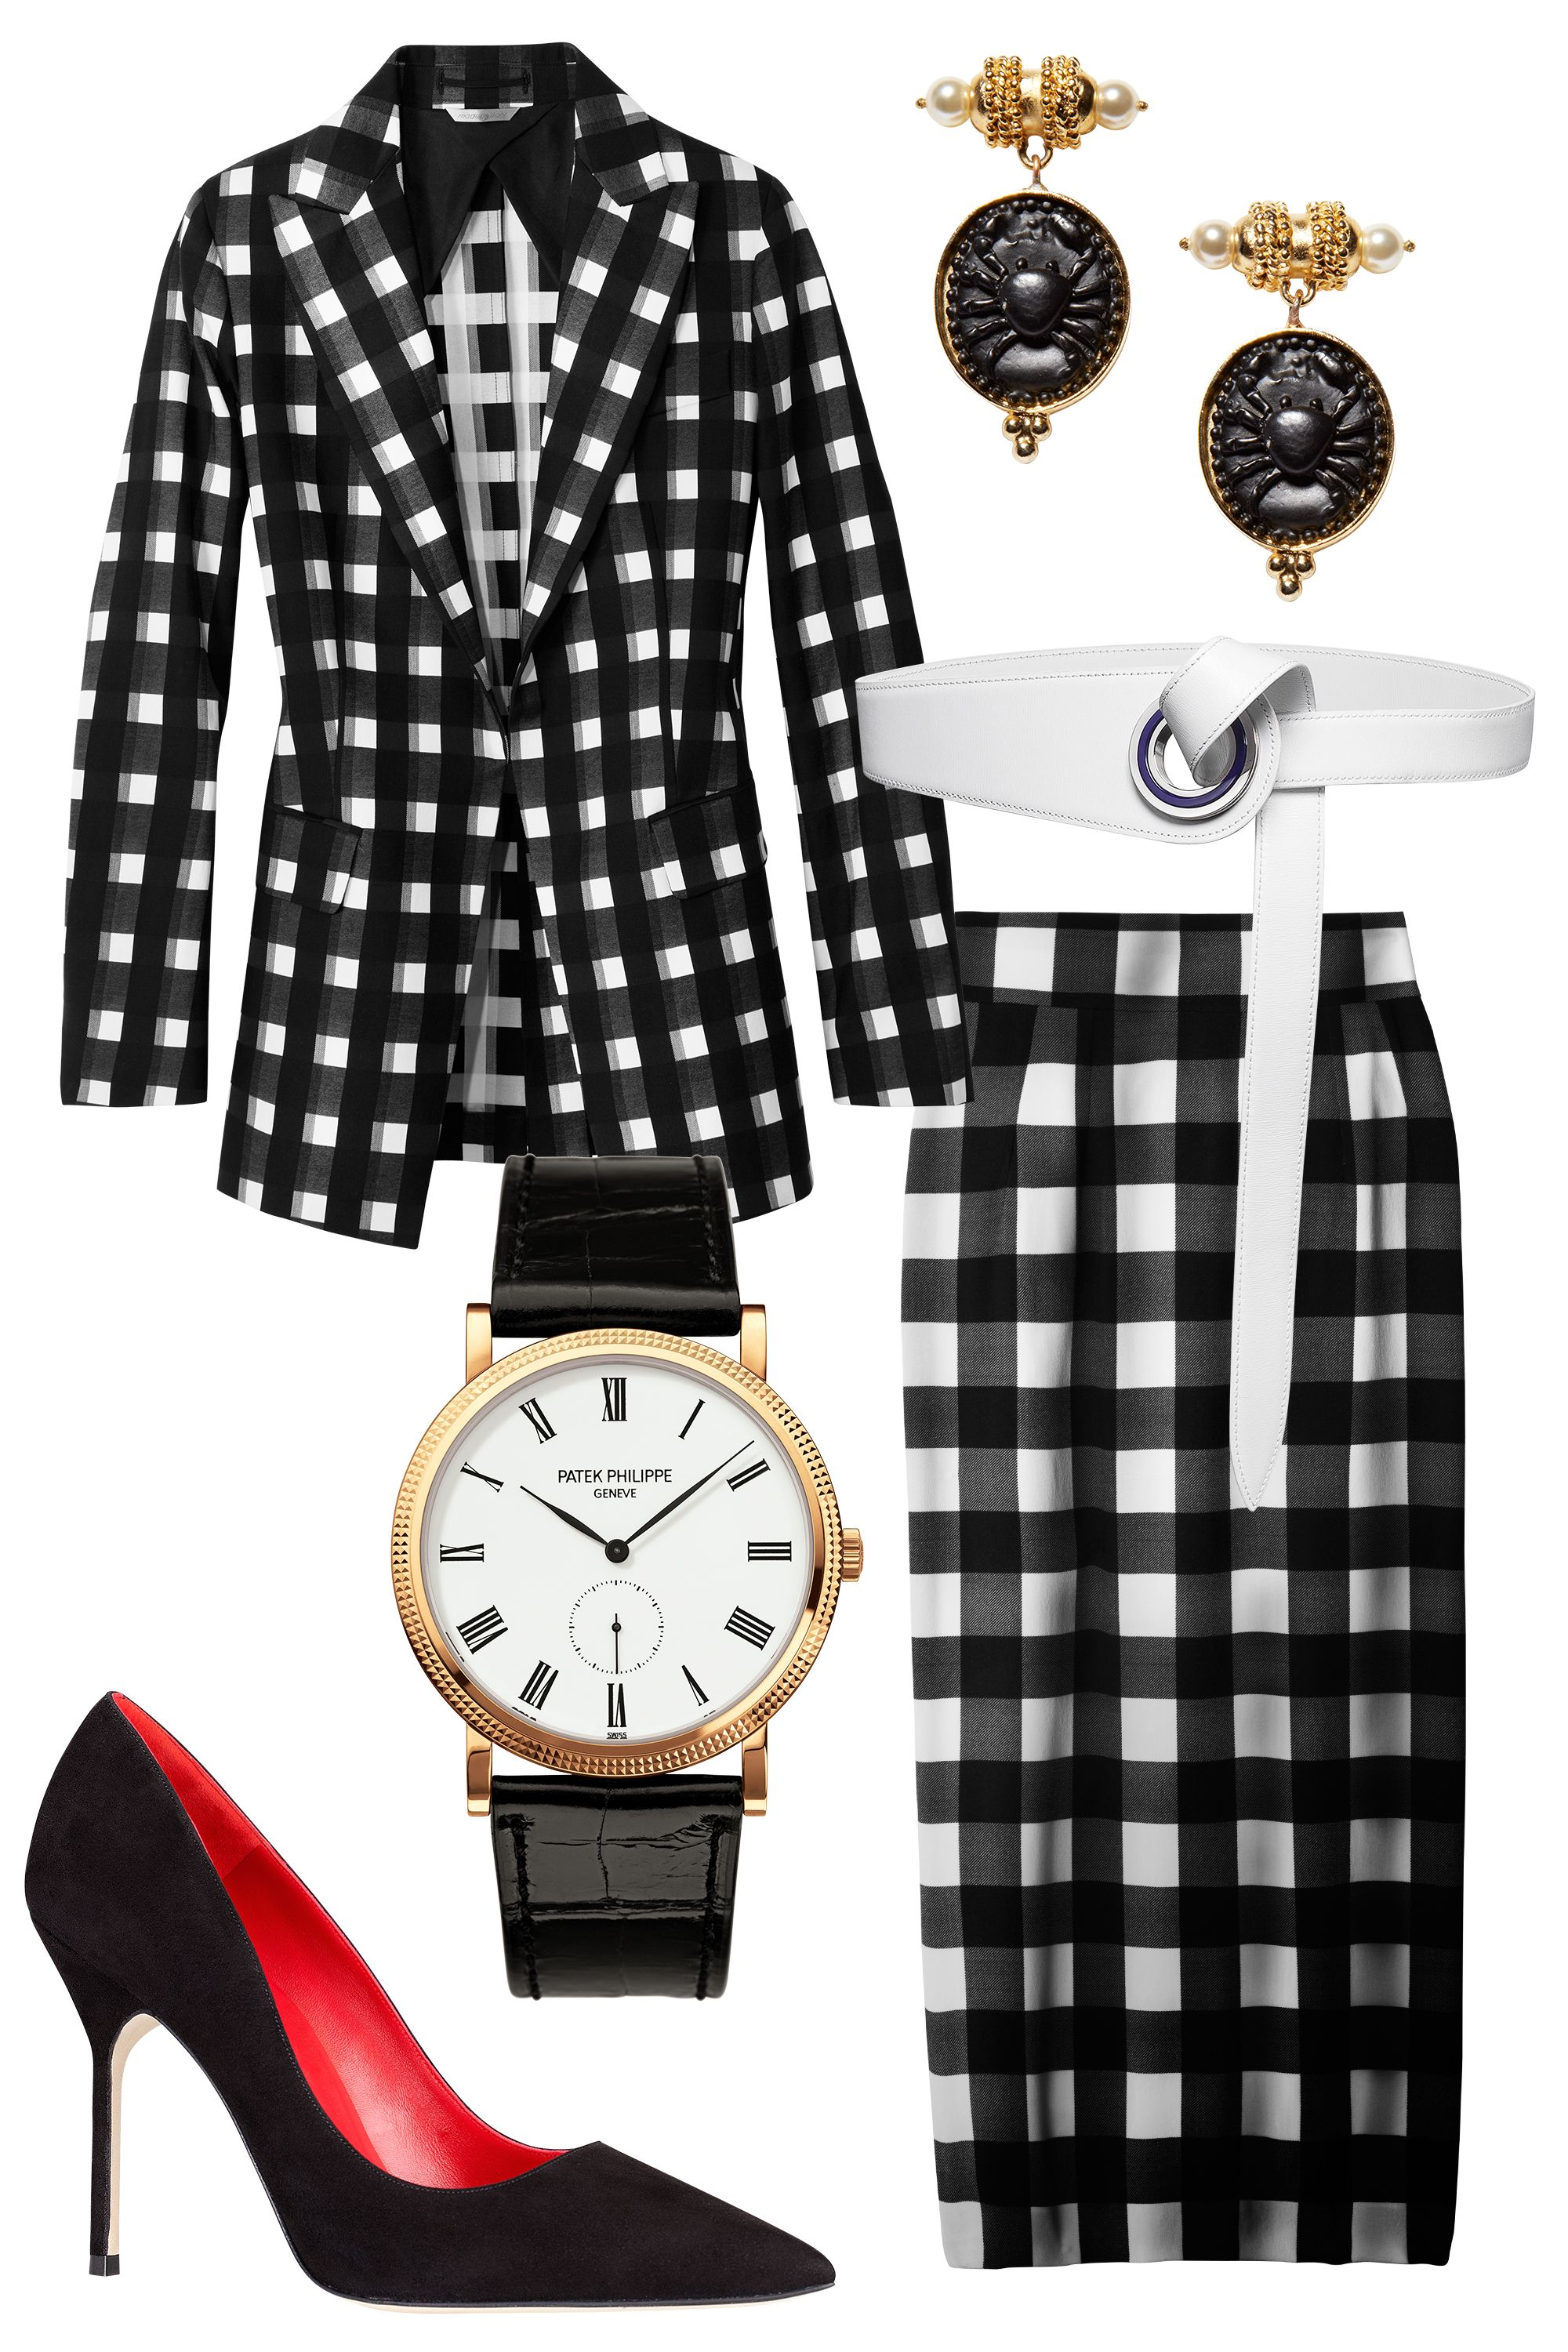 "Office attire is getting a makeover thanks to a heavy dose of pattern play and just-this-side-of-sexy silhouettes. Take your cue from Joseph Altuzarra and anchor a gingham look with polished extras—black heels and a waist-defining belt are musts.  <strong>Altuzarra</strong> earrings, <a target=""_blank"" href=""http://altuzarra.com/en/contents"">altuzarra.com</a>; <strong>Sportmax</strong> blazer, $1,190, Similar styles at <a target=""_blank"" href=""http://shop.harpersbazaar.com/clothing/jackets-blazers/"">shopBAZAAR.com</a><img src=""http://assets.hdmtools.com/images/HBZ/Shop.svg"" class=""icon shop"">; <strong>Dior</strong> belt, $740, 800-929-Dior; <strong>Patek Phillippe</strong> watch, Tiffany & co., NYC; 212-905-4036; <strong>Doce & Gabbana</strong> skirt, $995, 877-70-DGUSA; <strong>CH Carolina Herrera</strong> pump, $495, 310-276-8900"